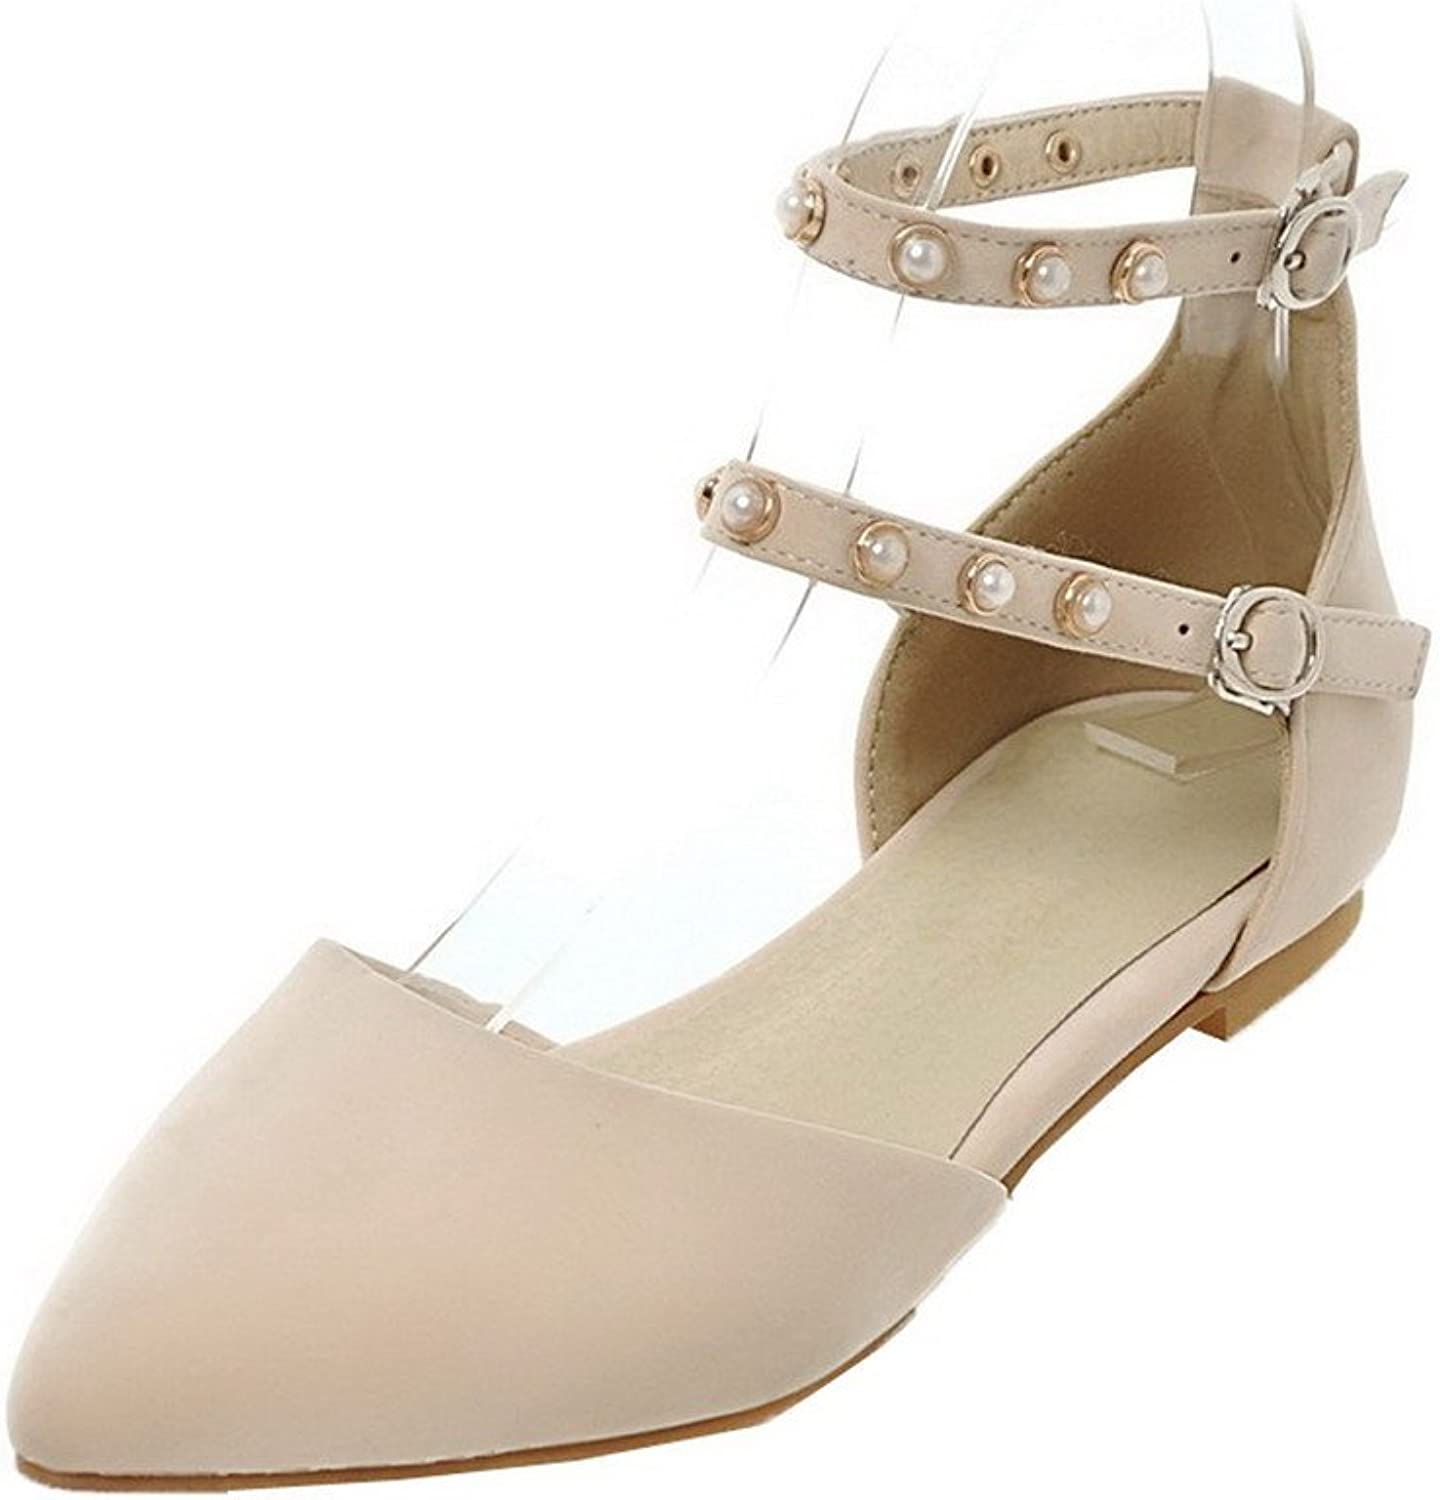 WeiPoot Women's Closed-Toe Low-Heels Frosted Solid Buckle Sandals, EGHLH006618